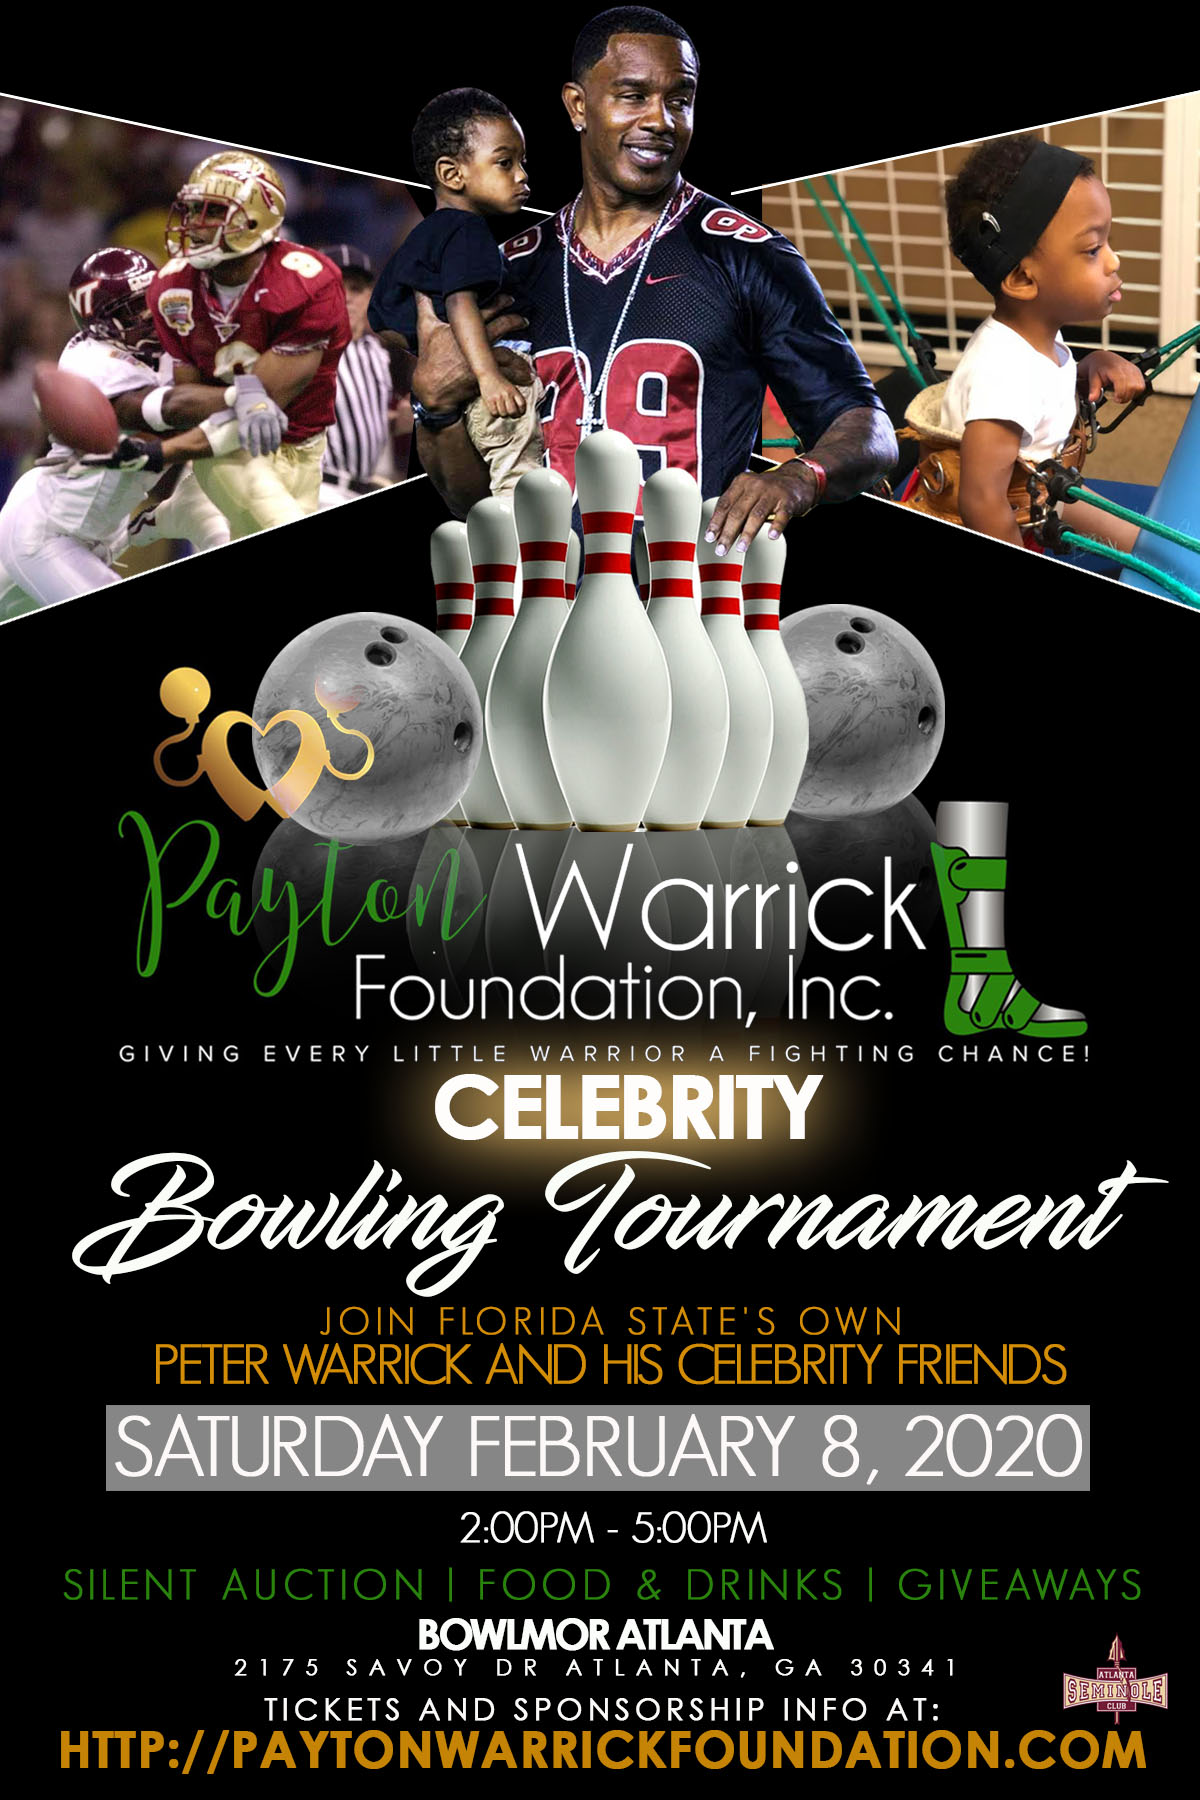 PWF Celebrity Bowling Tournament